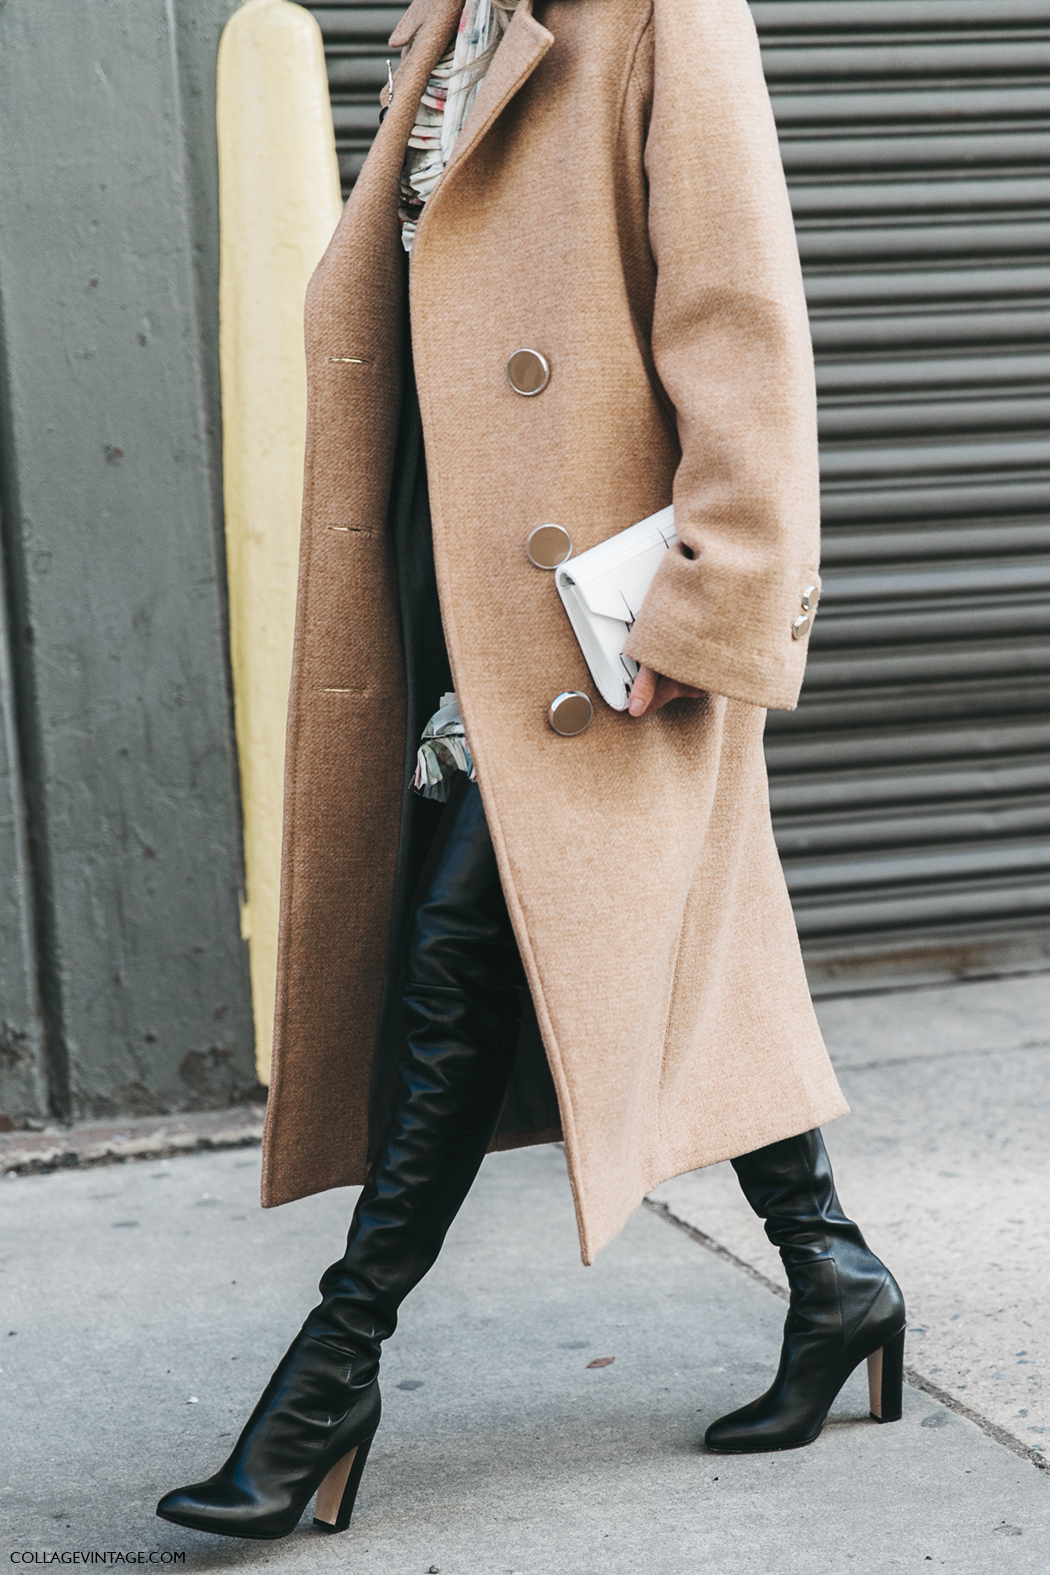 NYFW-New_York_Fashion_Week-Fall_Winter-17-Street_Style-Helena_Bordon-Camel_Coat-XXL_Boots-Over_The_Knee-1